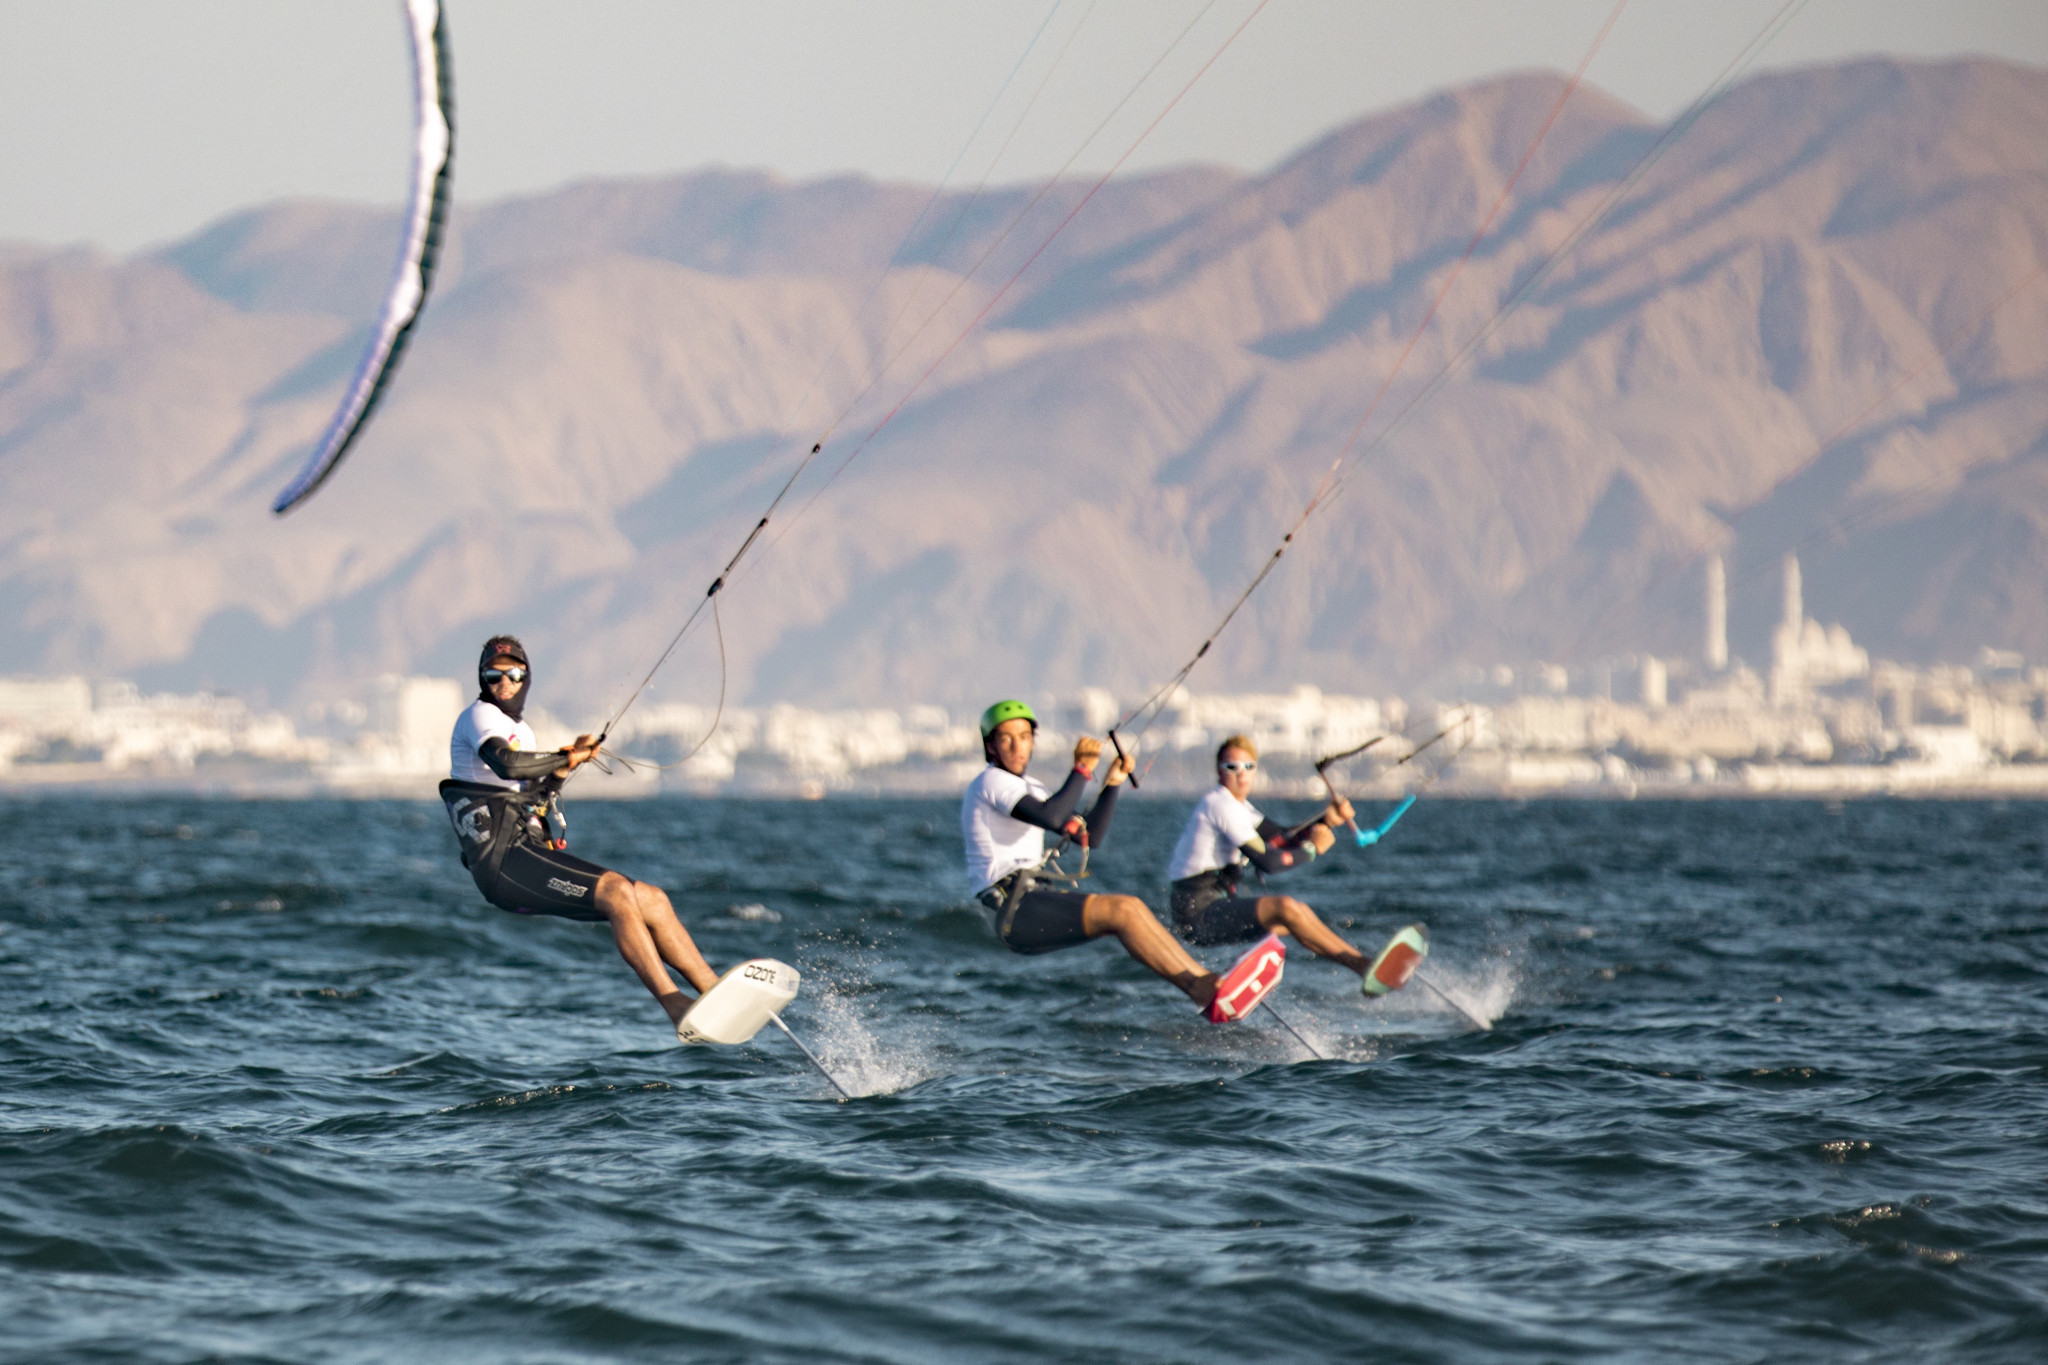 Racing halted amid strong winds at Formula Kite European Championships